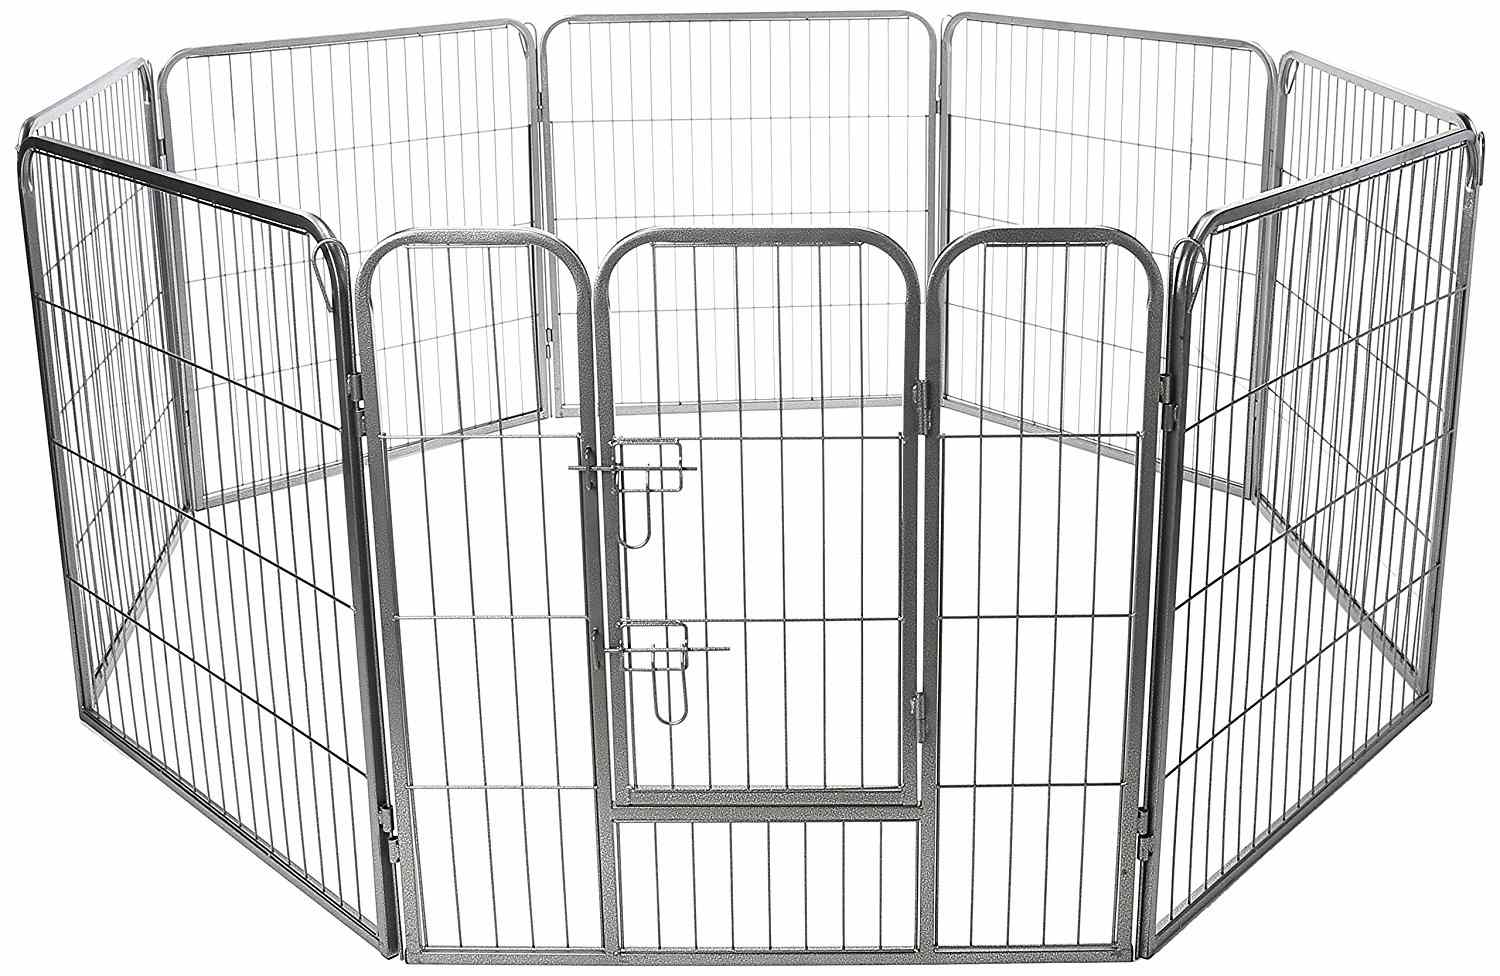 Paws & Pals Dog Playpen Hard Wire Grid Foldable Octagon